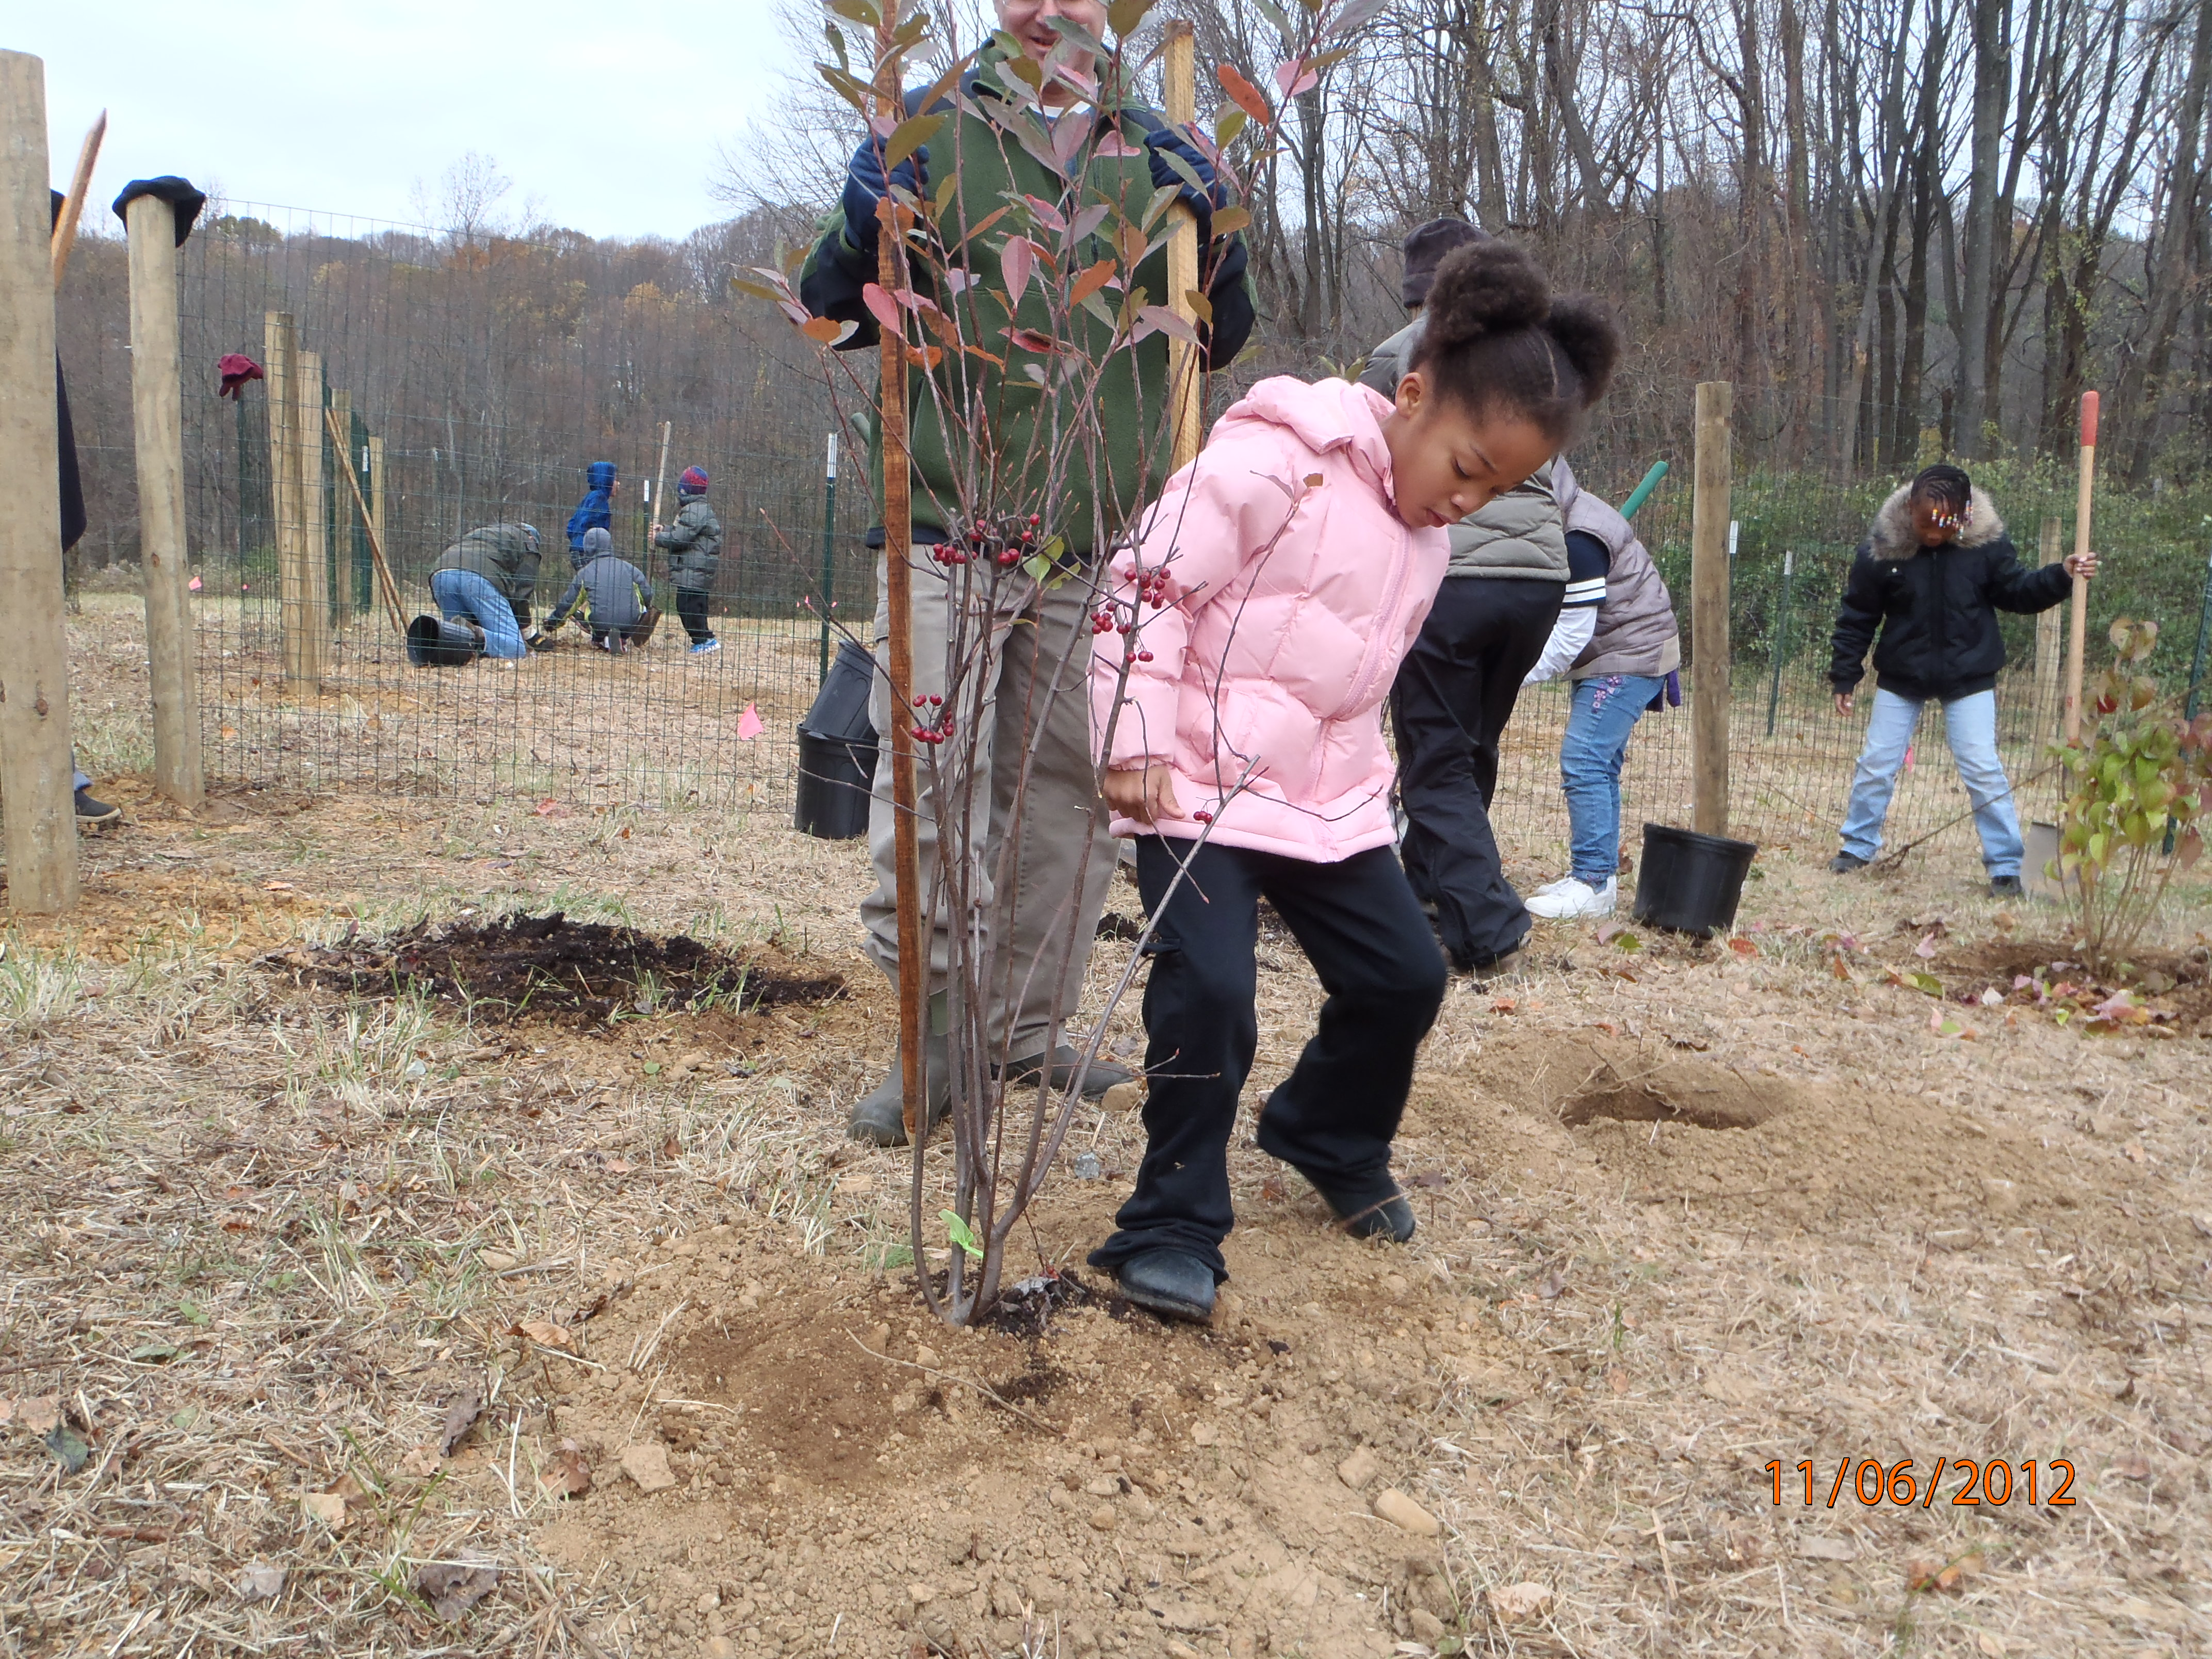 Melton student packing in the shrub.  Photo by Bill Hartman.